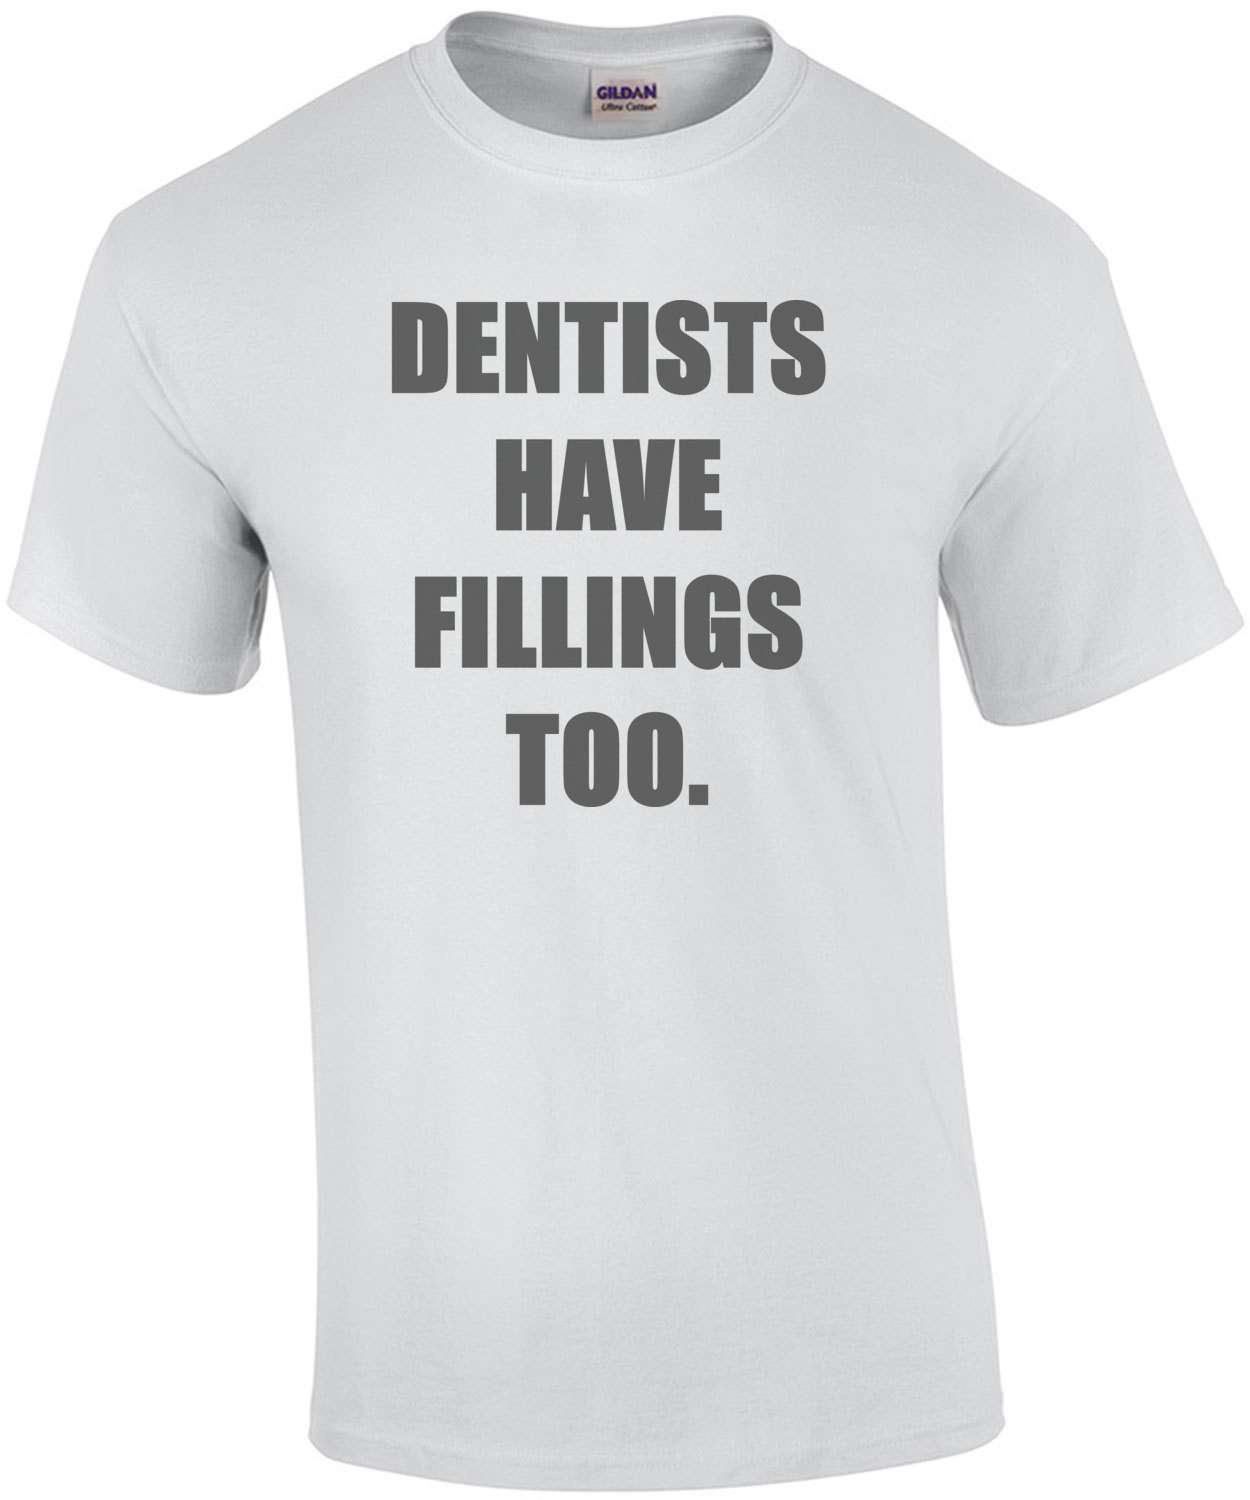 Dentists have fillings too. funny dentist t-shirt